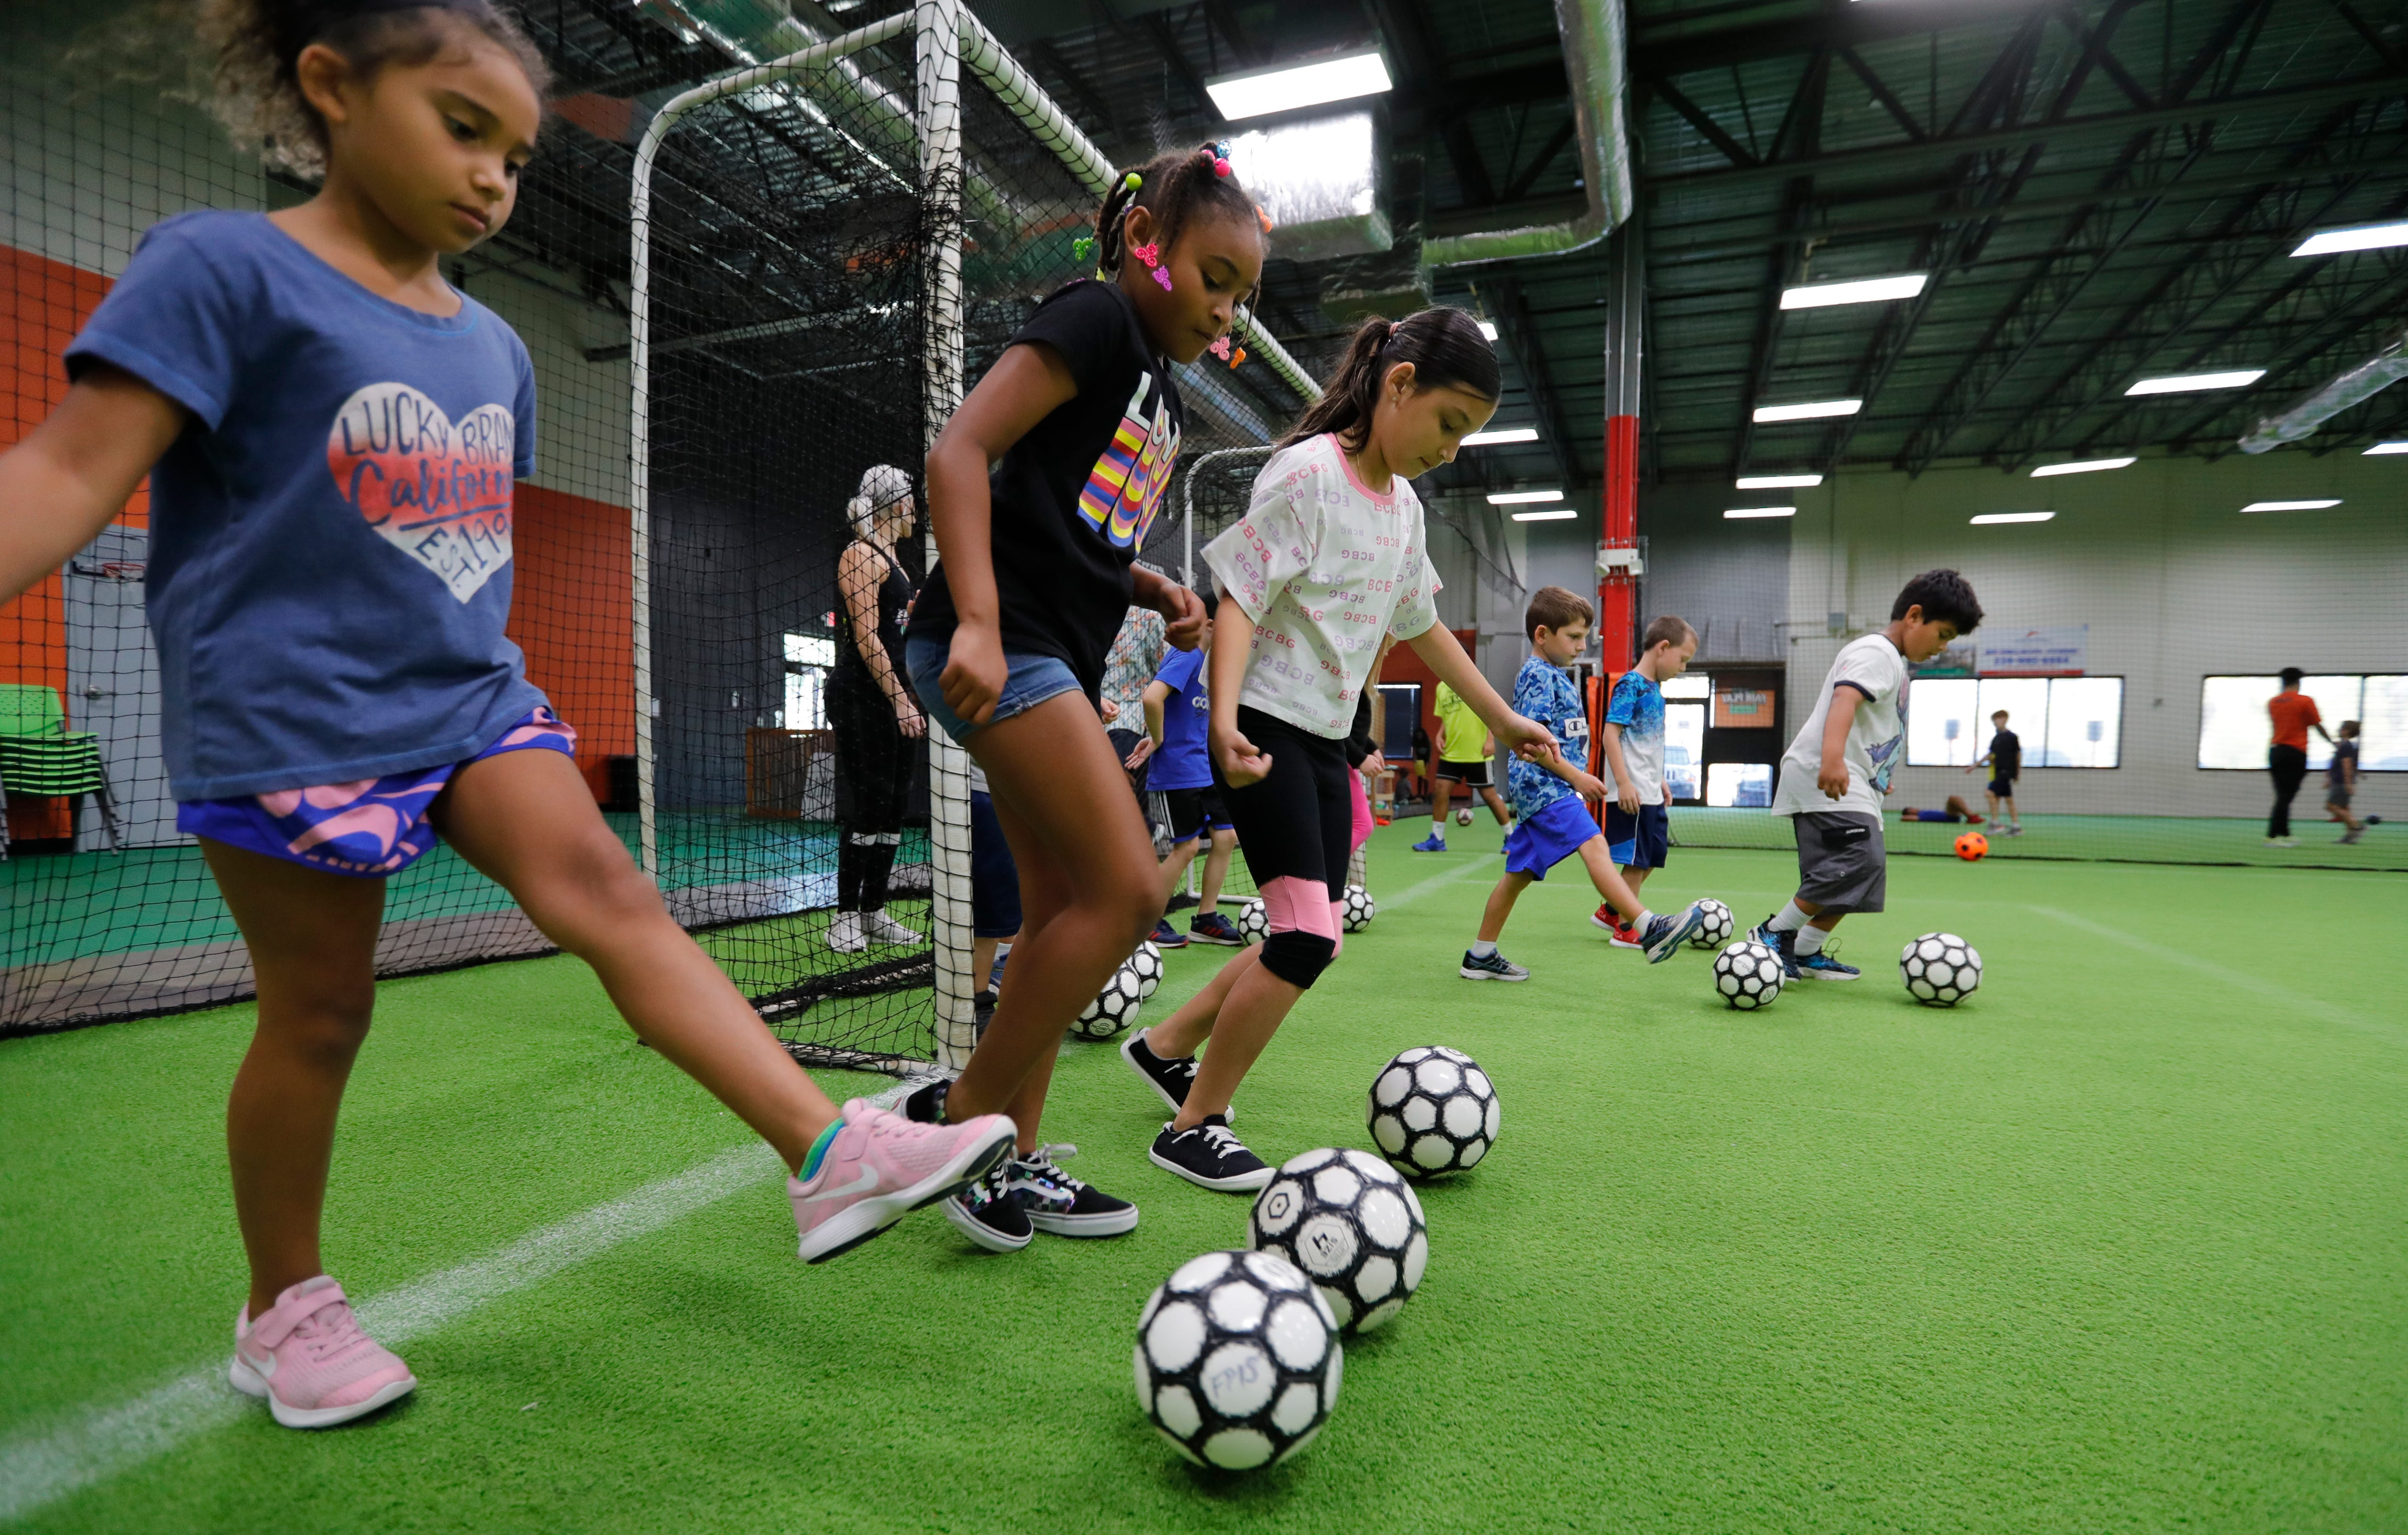 Cape Coral indoor soccer facility gets back to basics 2